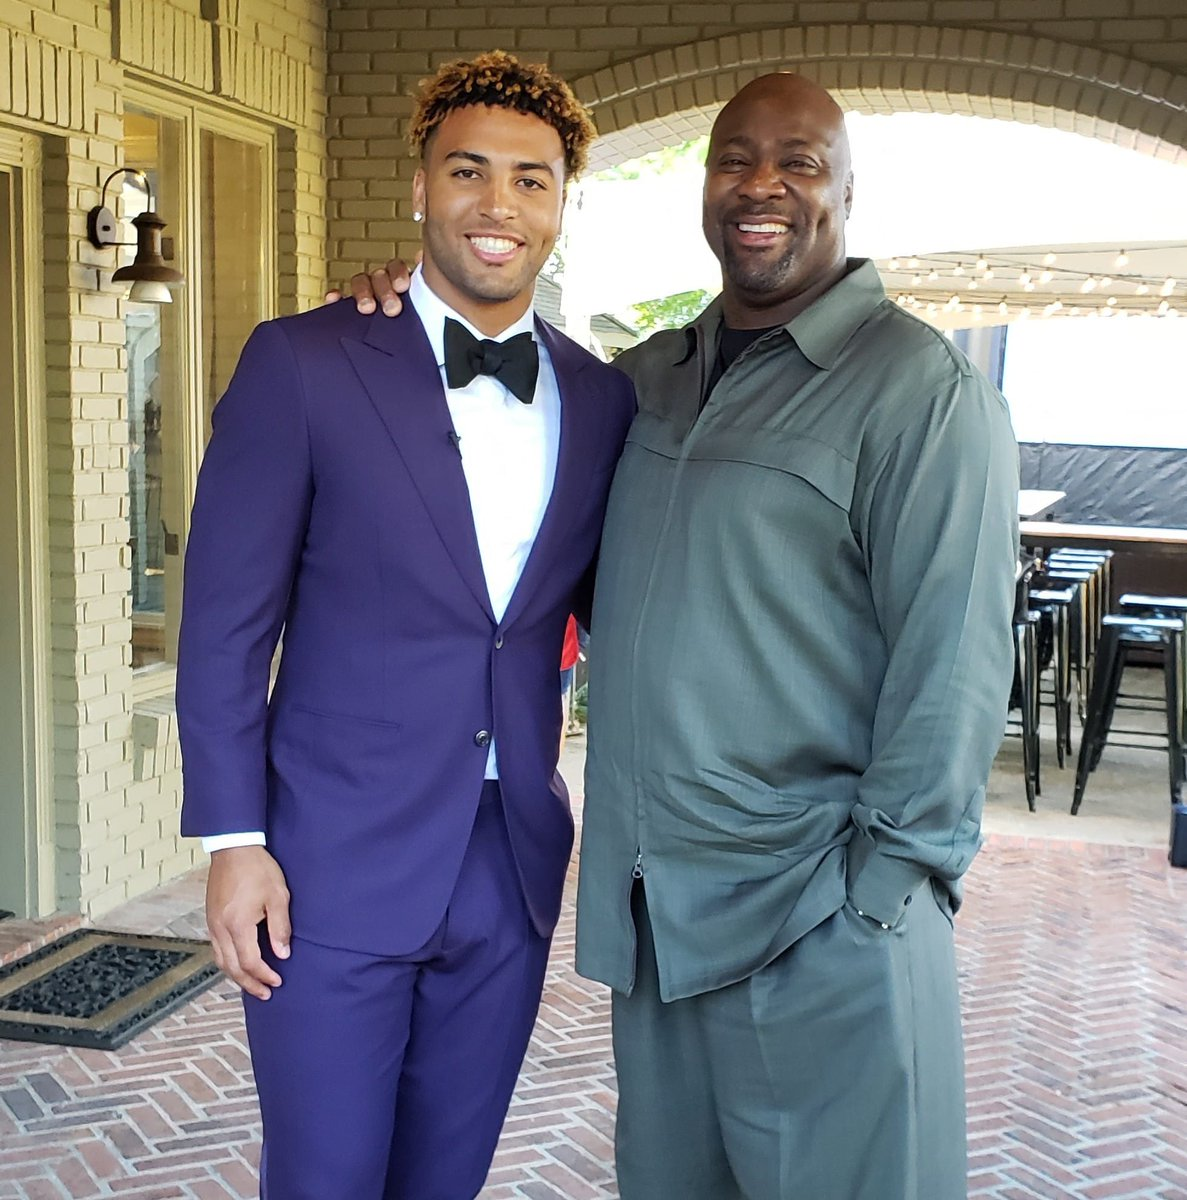 Very proud of Irv 2.0 and all he accomplished this year .#Skol @Vikings #ThrowbackThursday